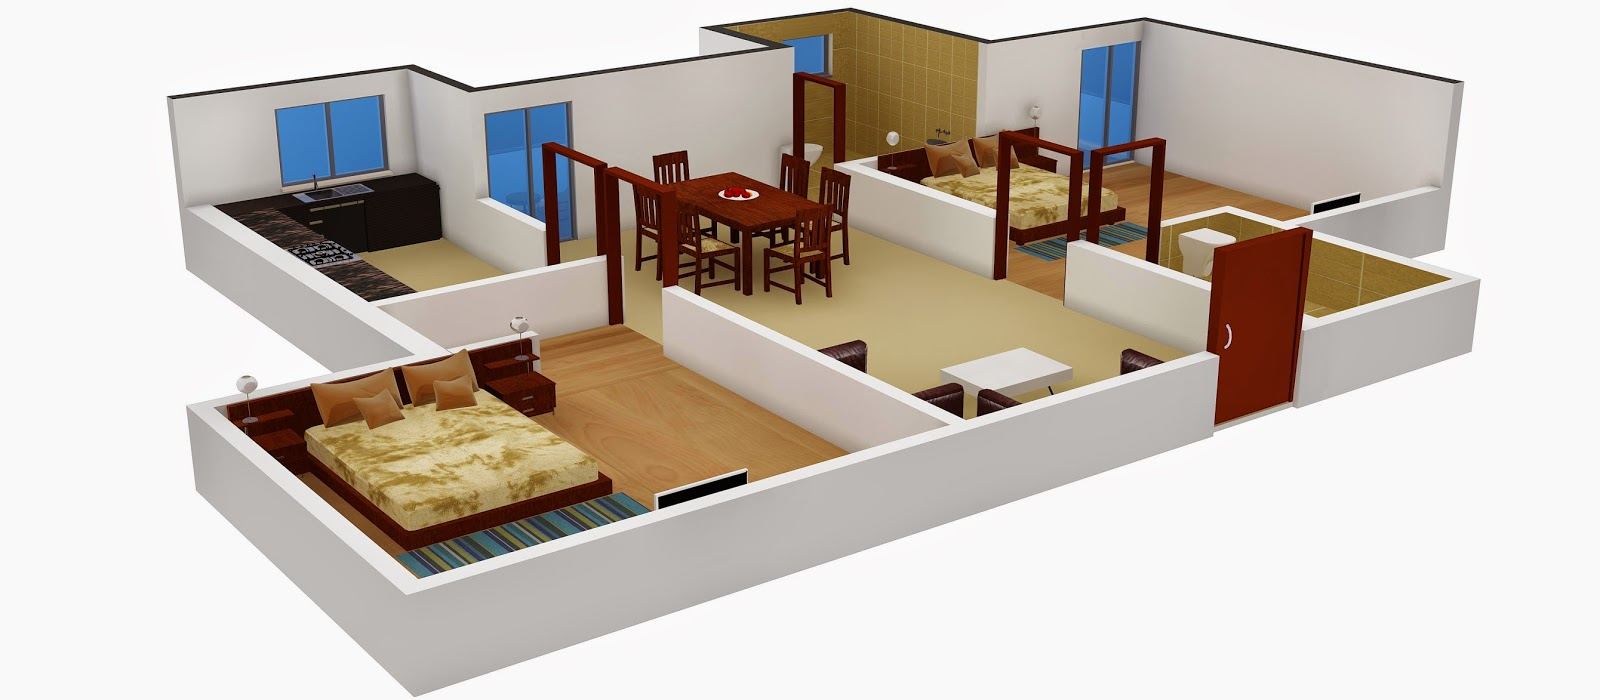 Interior design 2 bhk flat for 1 bhk flat interior decoration image